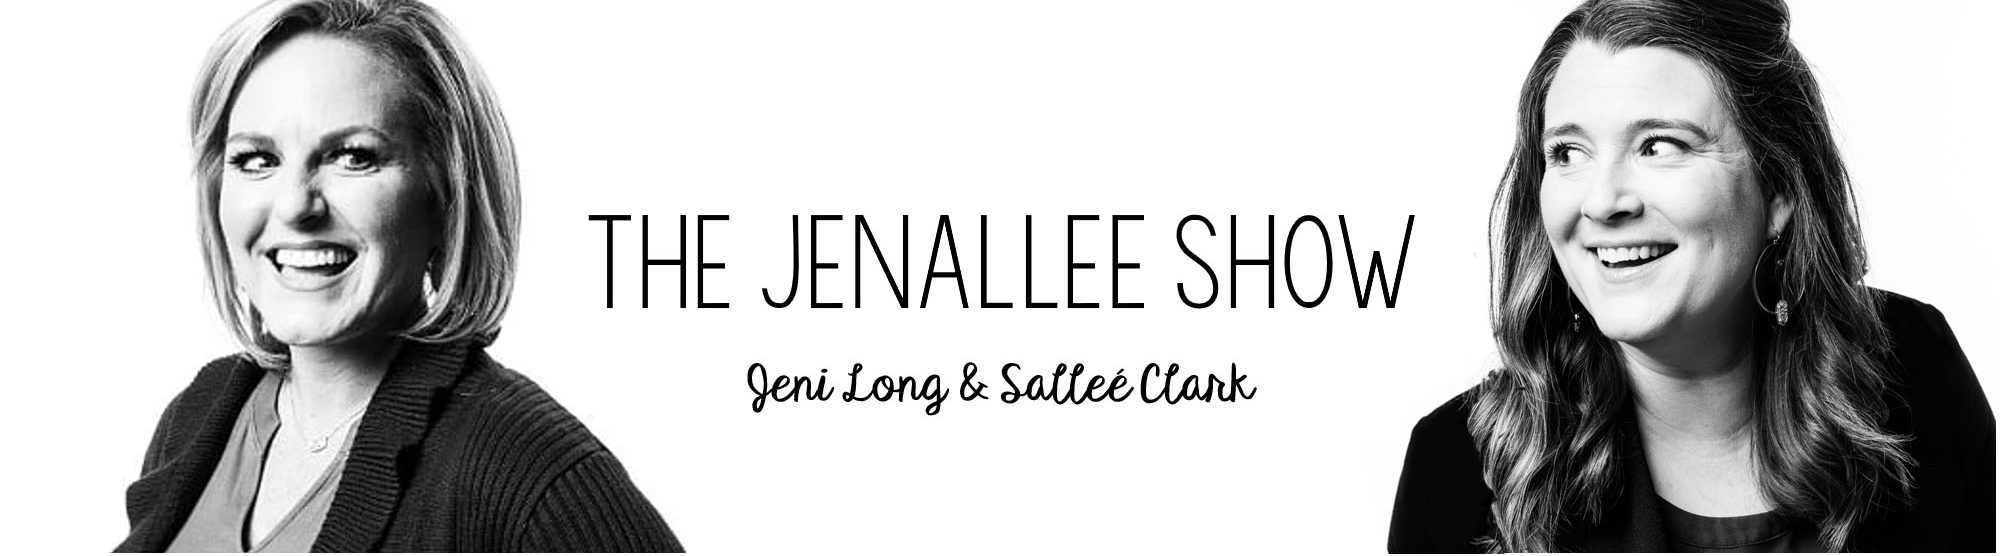 The Jenallee Show